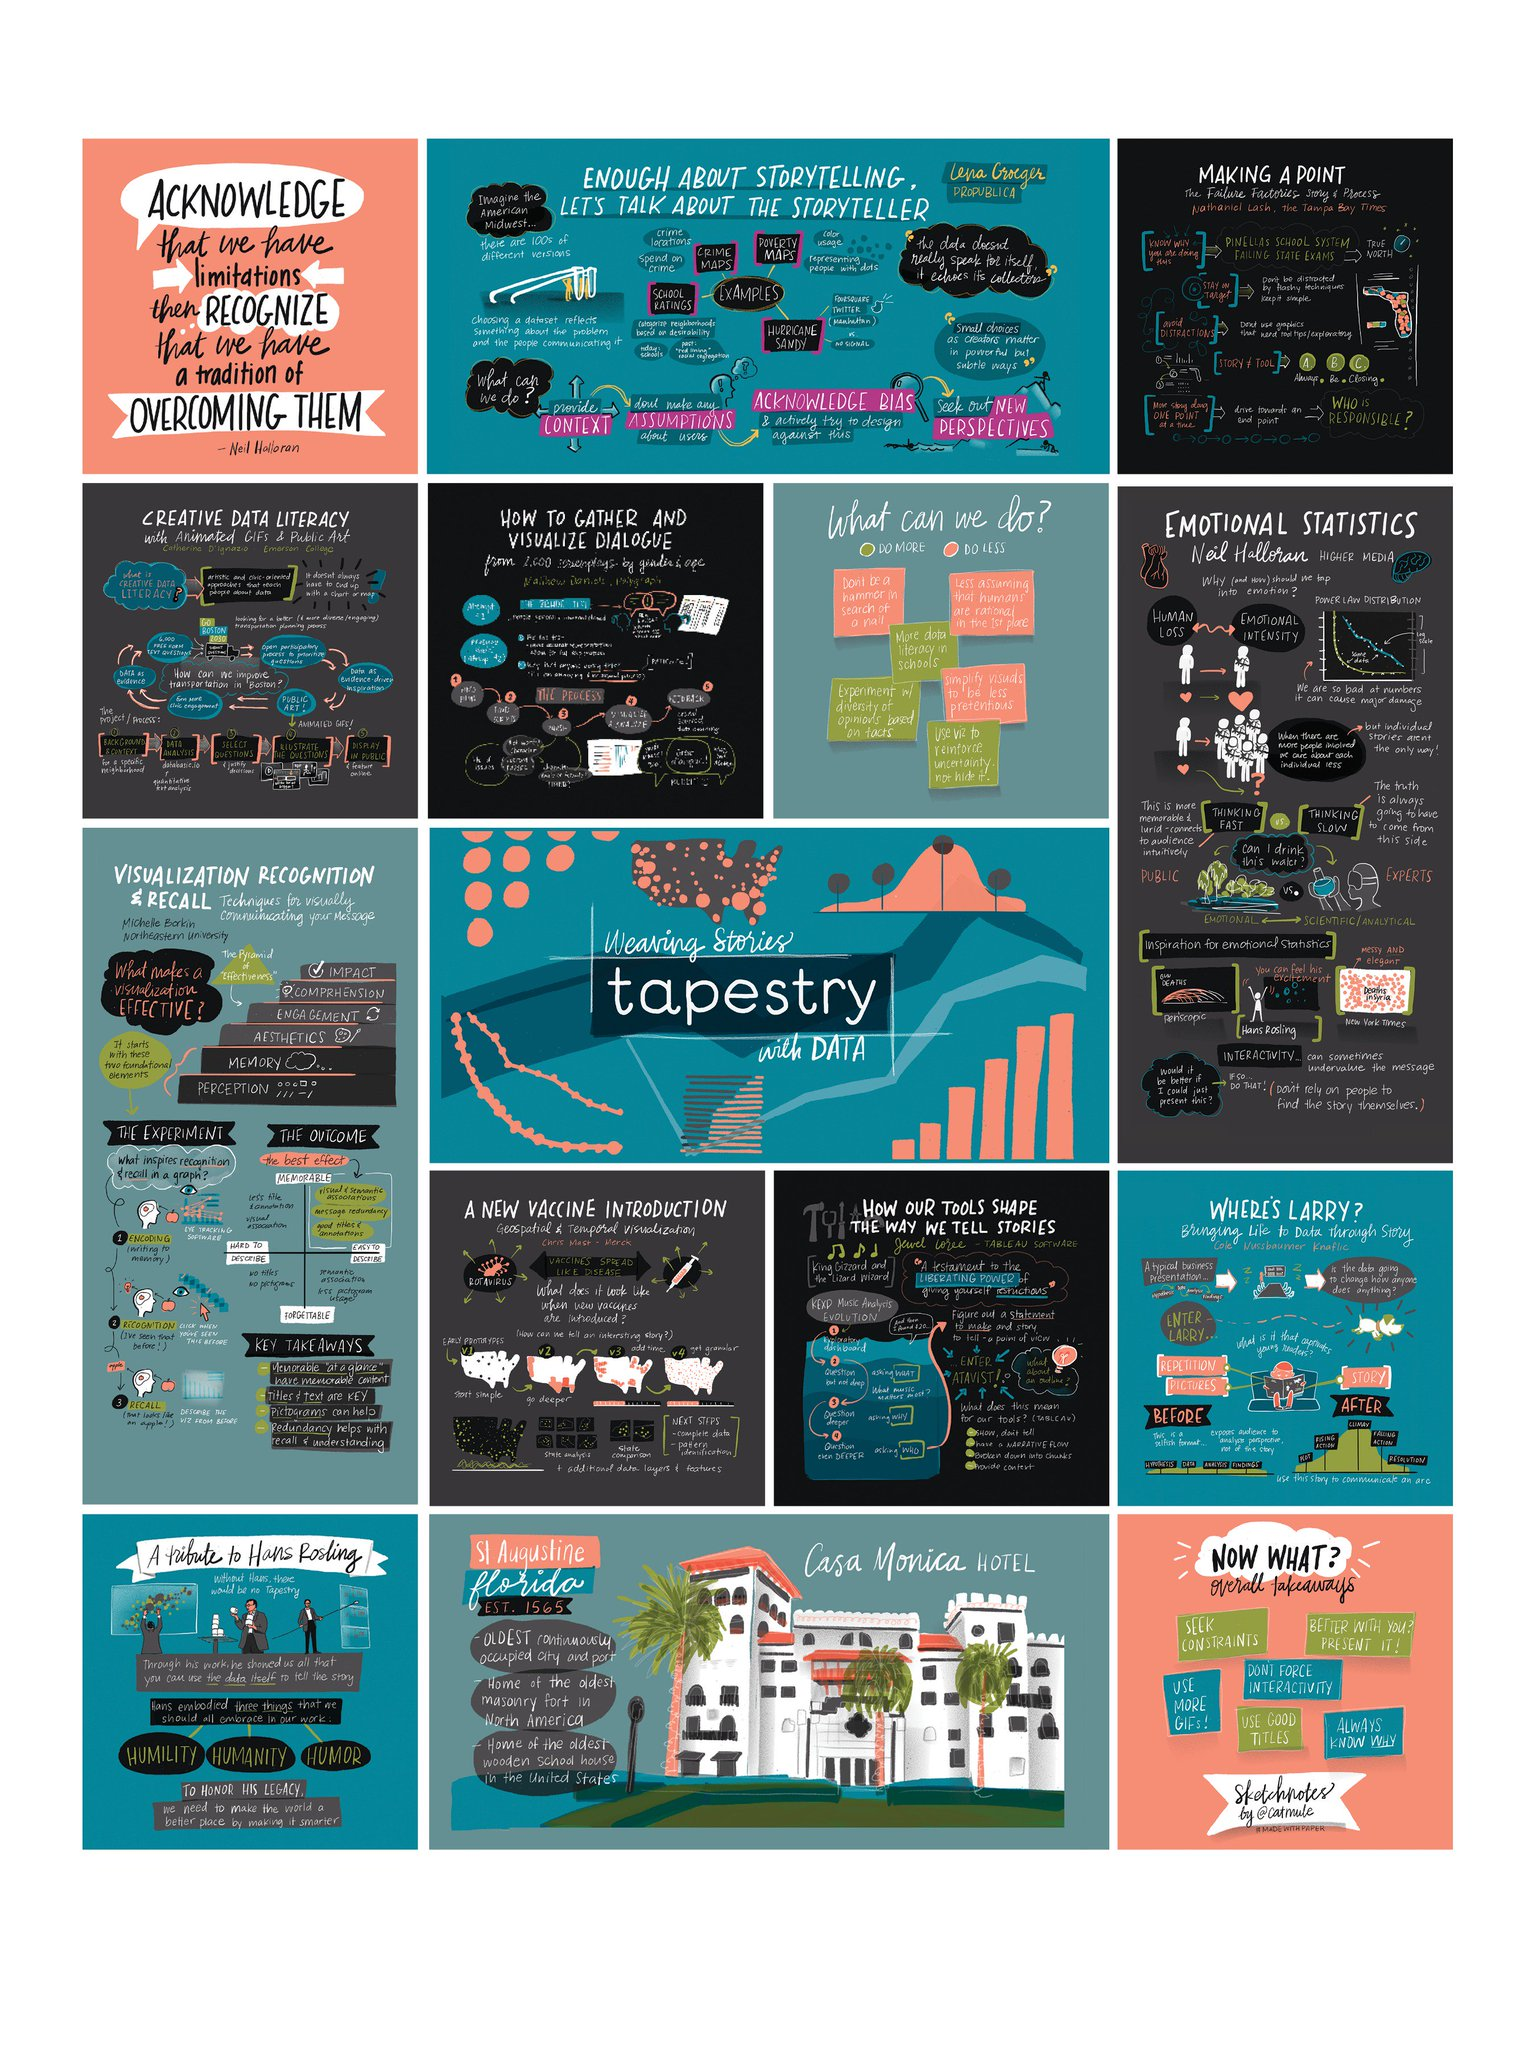 Just posted my #tapestryconf recap with all of the #sketchnotes on my blog: https://t.co/rJ5Xmi3xfv https://t.co/55TuPZ8cvN